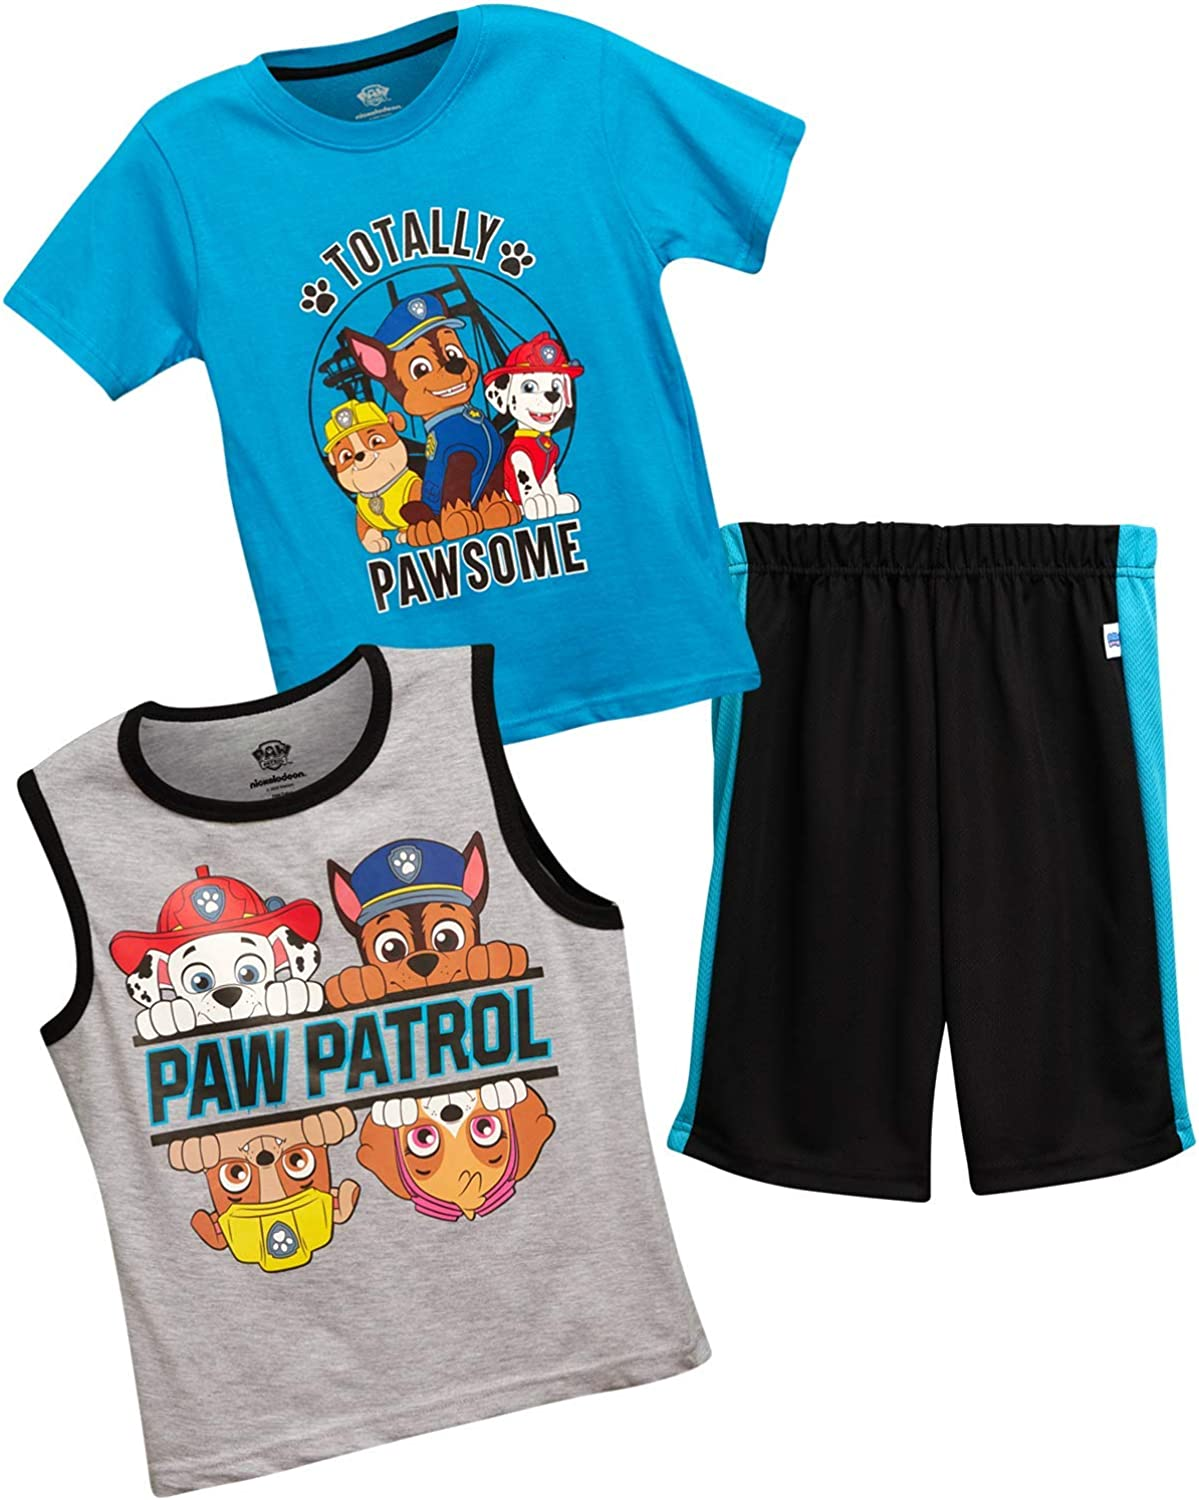 Nickelodeon Memphis Mall Paw At the price of surprise Patrol Boys 3-Piece Top Tank an Summer T-Shirt